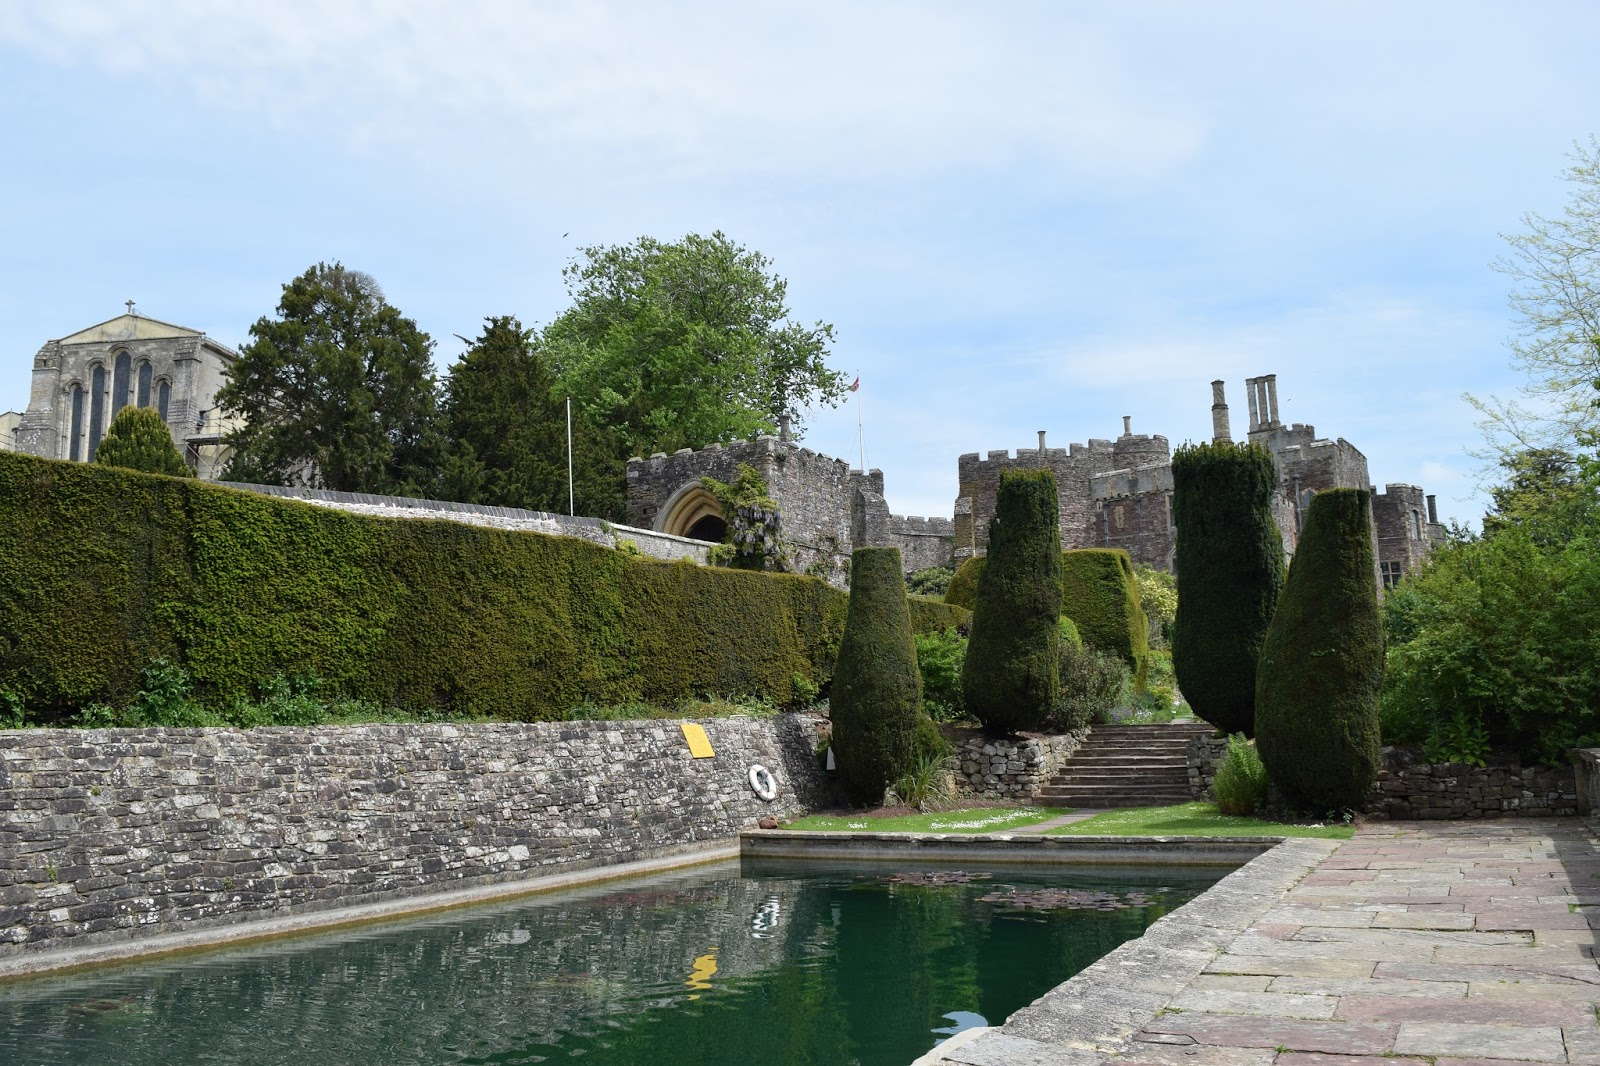 from the gardens of the castle. in front of me is a large pool. in the background the castle and the church can be seen behind the trees